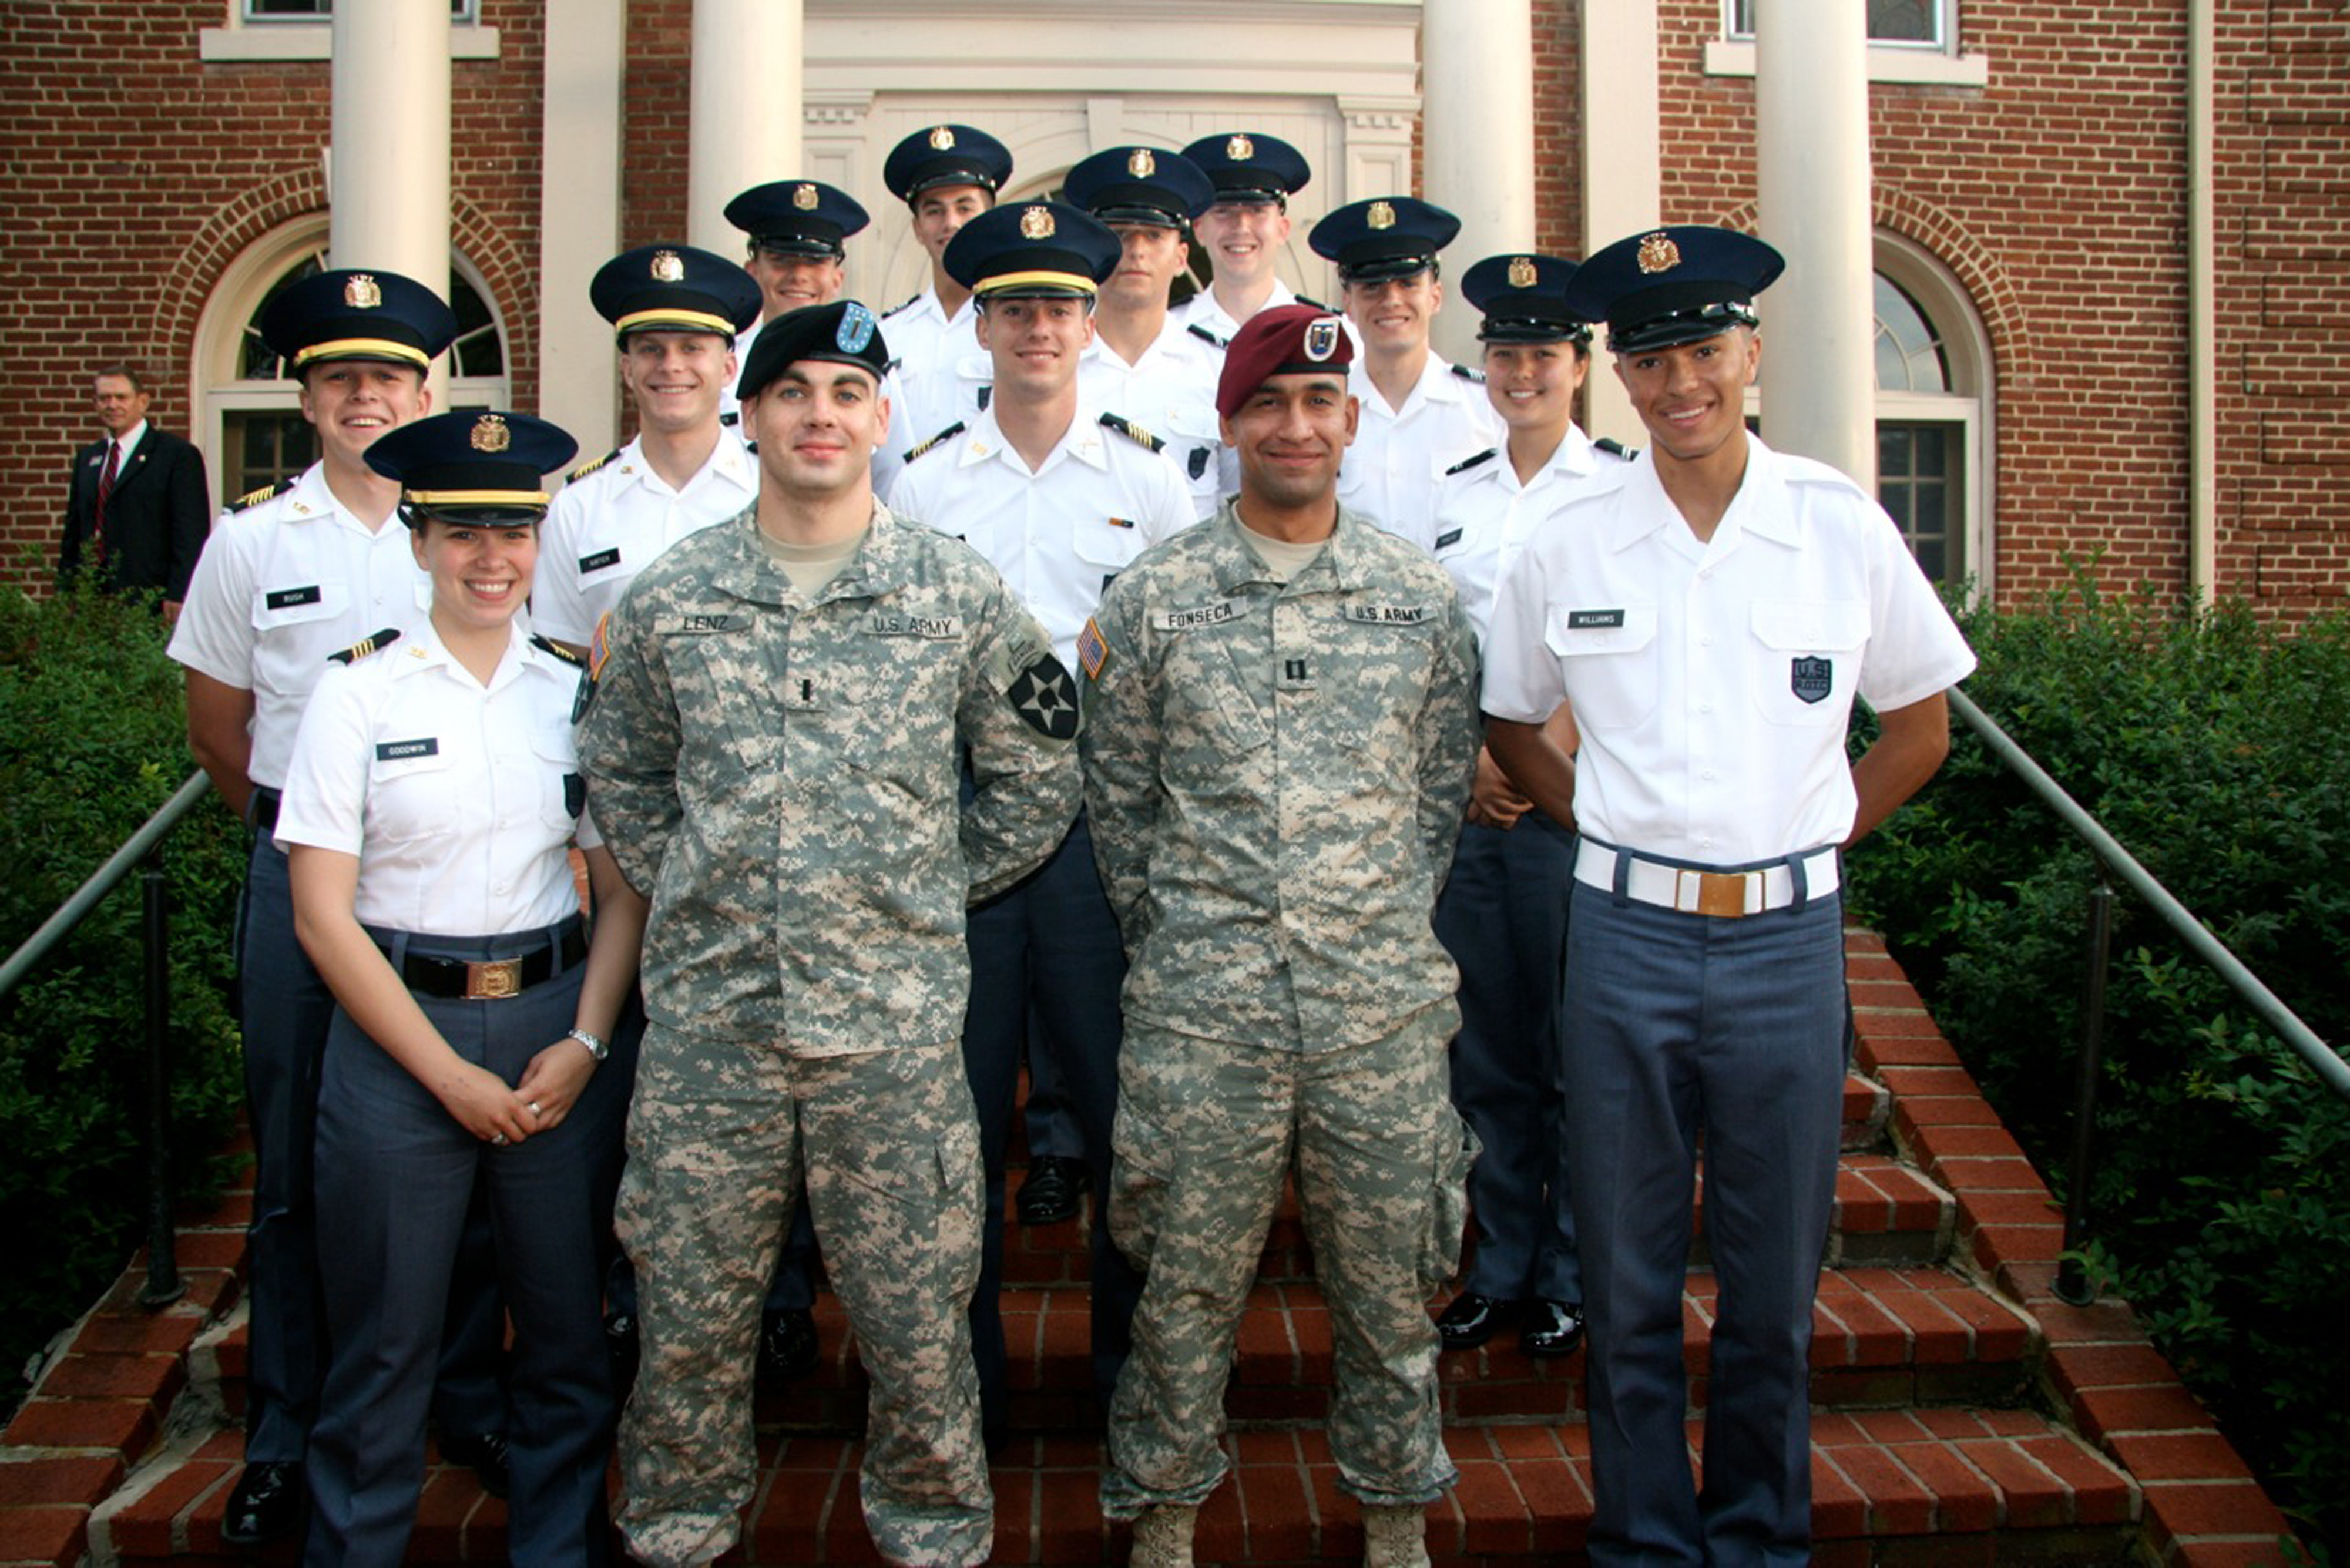 1st Lt. Thomas Lenz (center, left), U.S. Army, Virginia Tech Corps of Cadets Class of 2008 and Capt. Roberto Fonseca (center, right), U.S. Army, Virginia Tech Corps of Cadets Class of 2004, previous Gunfighter panelists standing with members of the Corps of Cadets